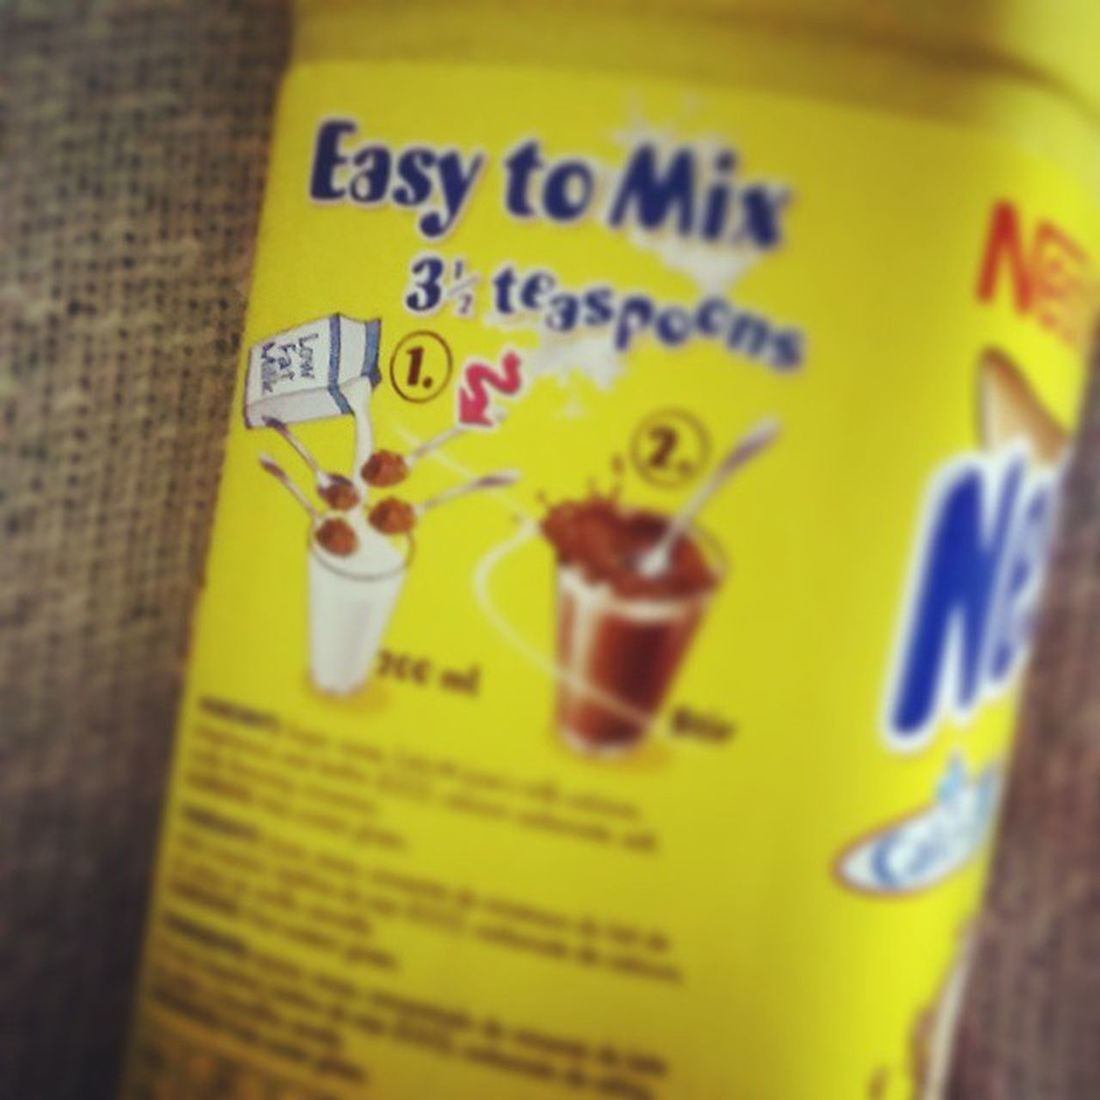 only allowed to mix Nesquik with Lowfatmilk